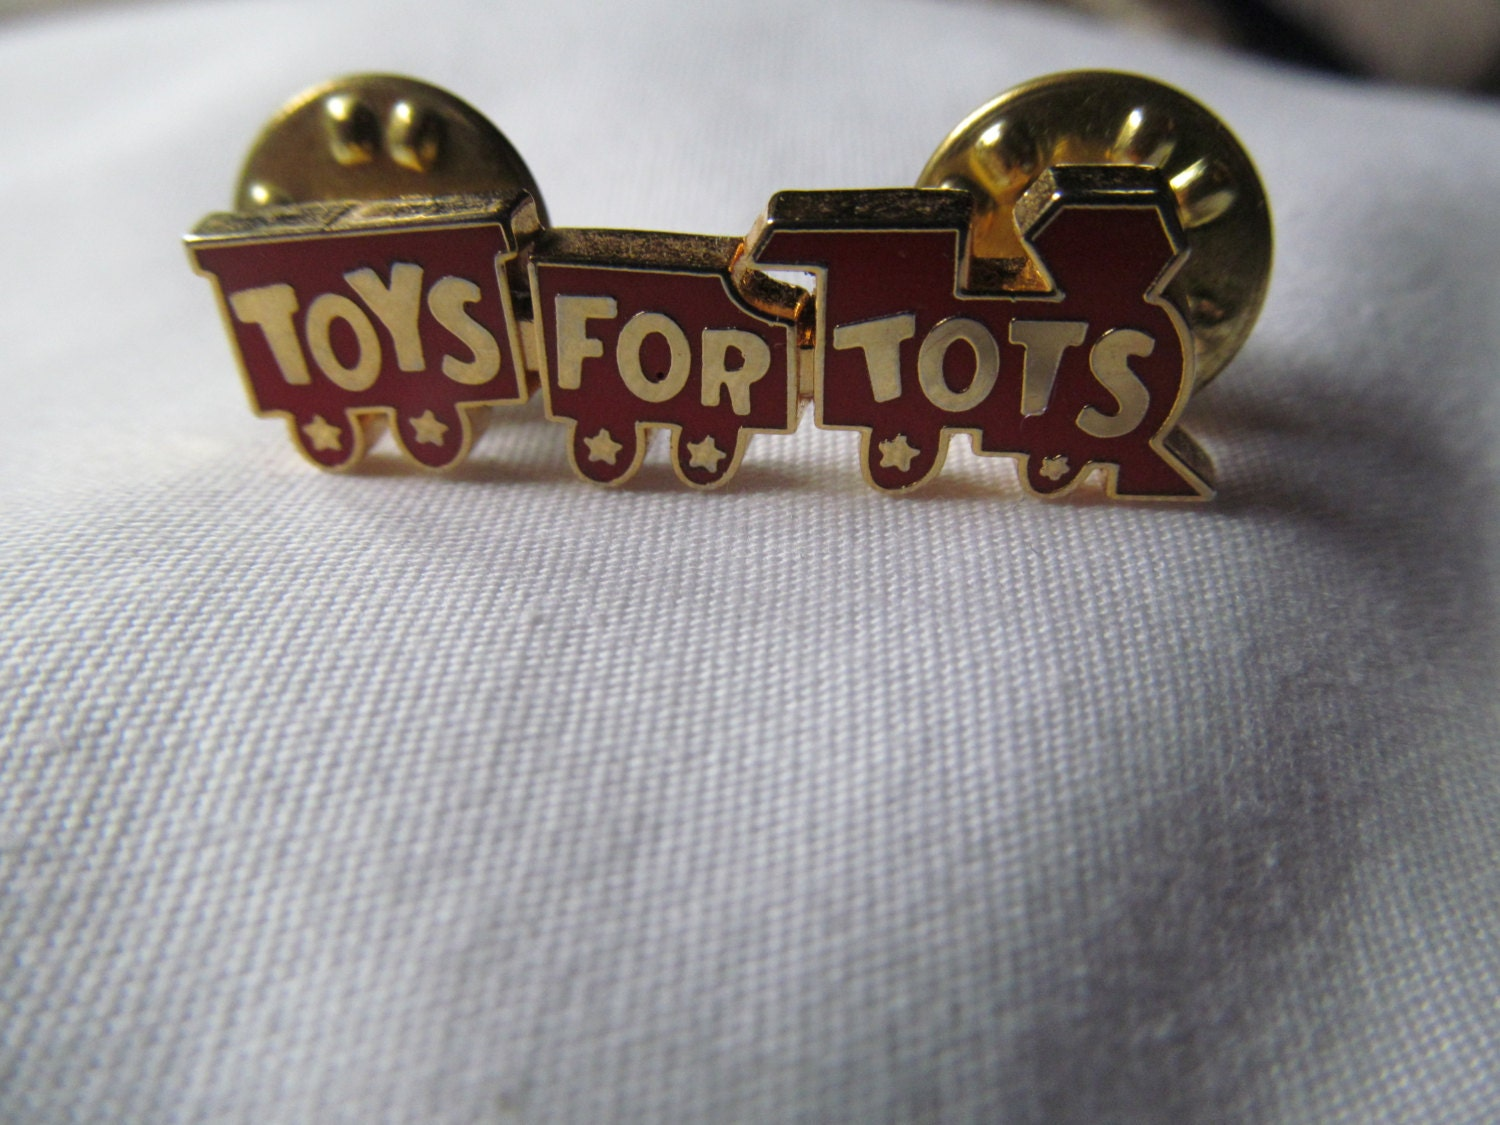 Toys For Tots Rating : Toys for tots pin back broach cho train full of